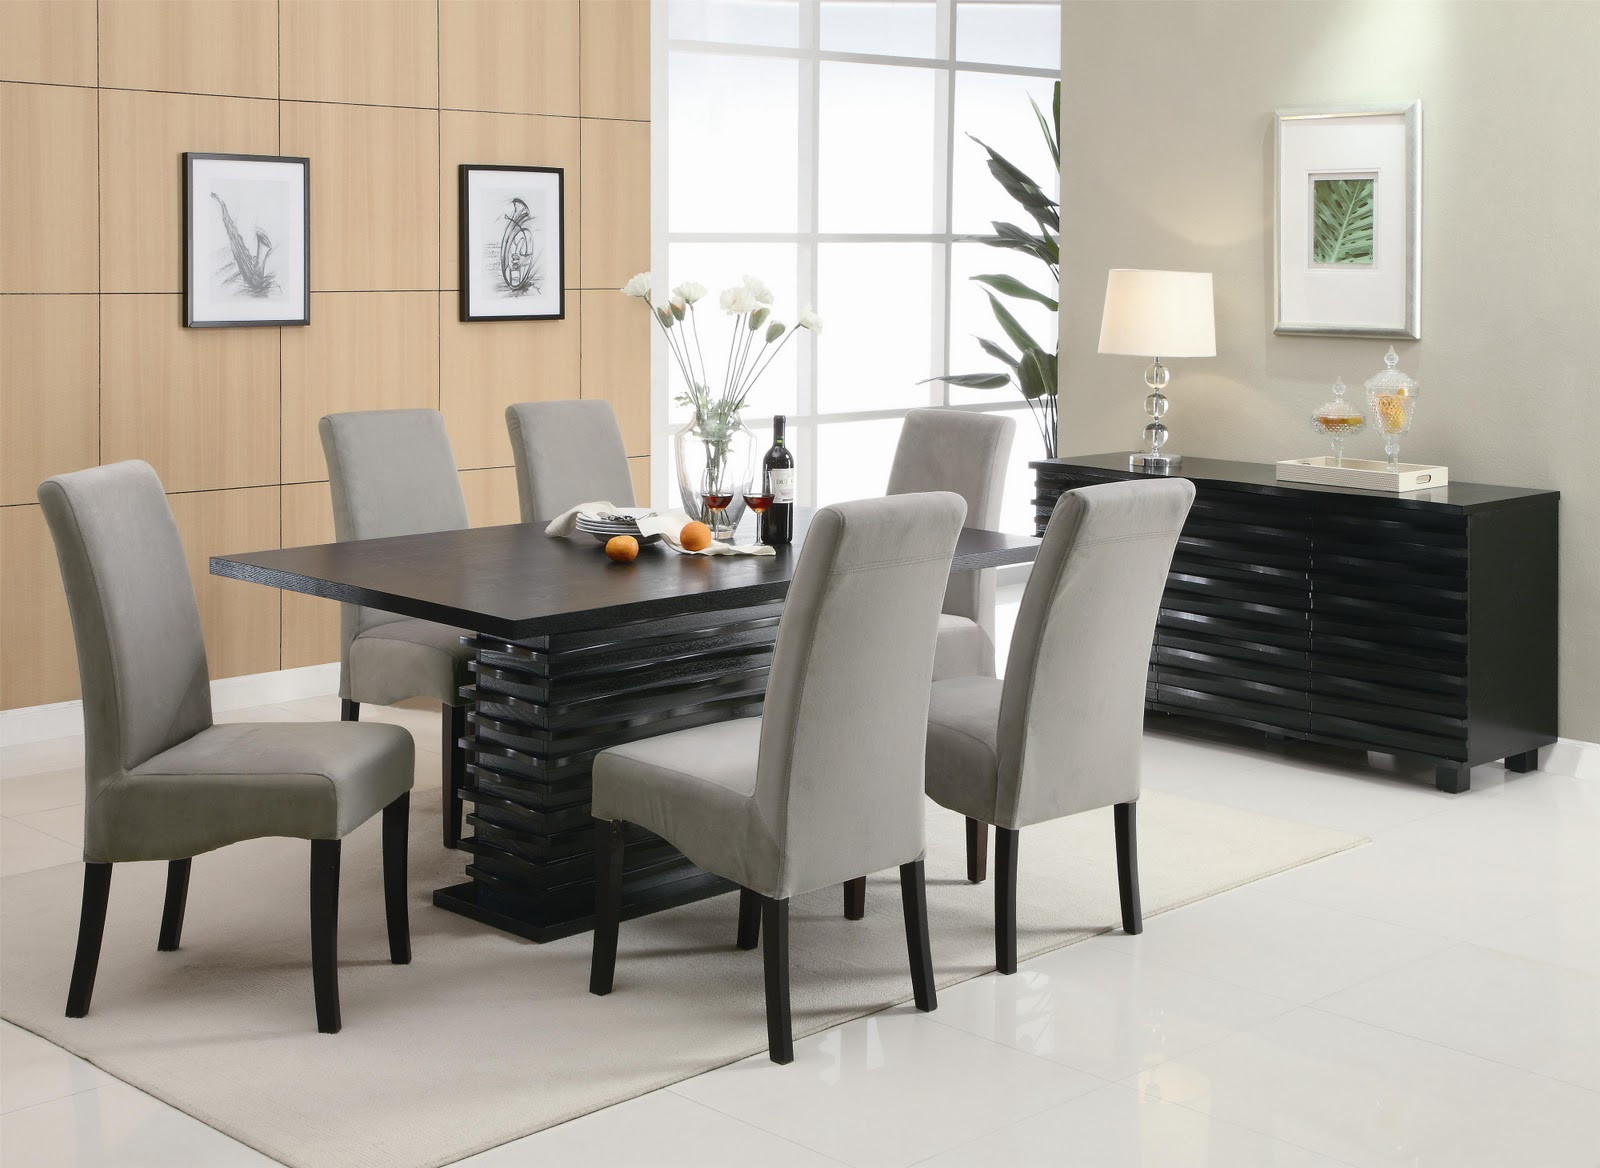 Best ideas about Dining Table And Chair Set . Save or Pin Dining Room Now.